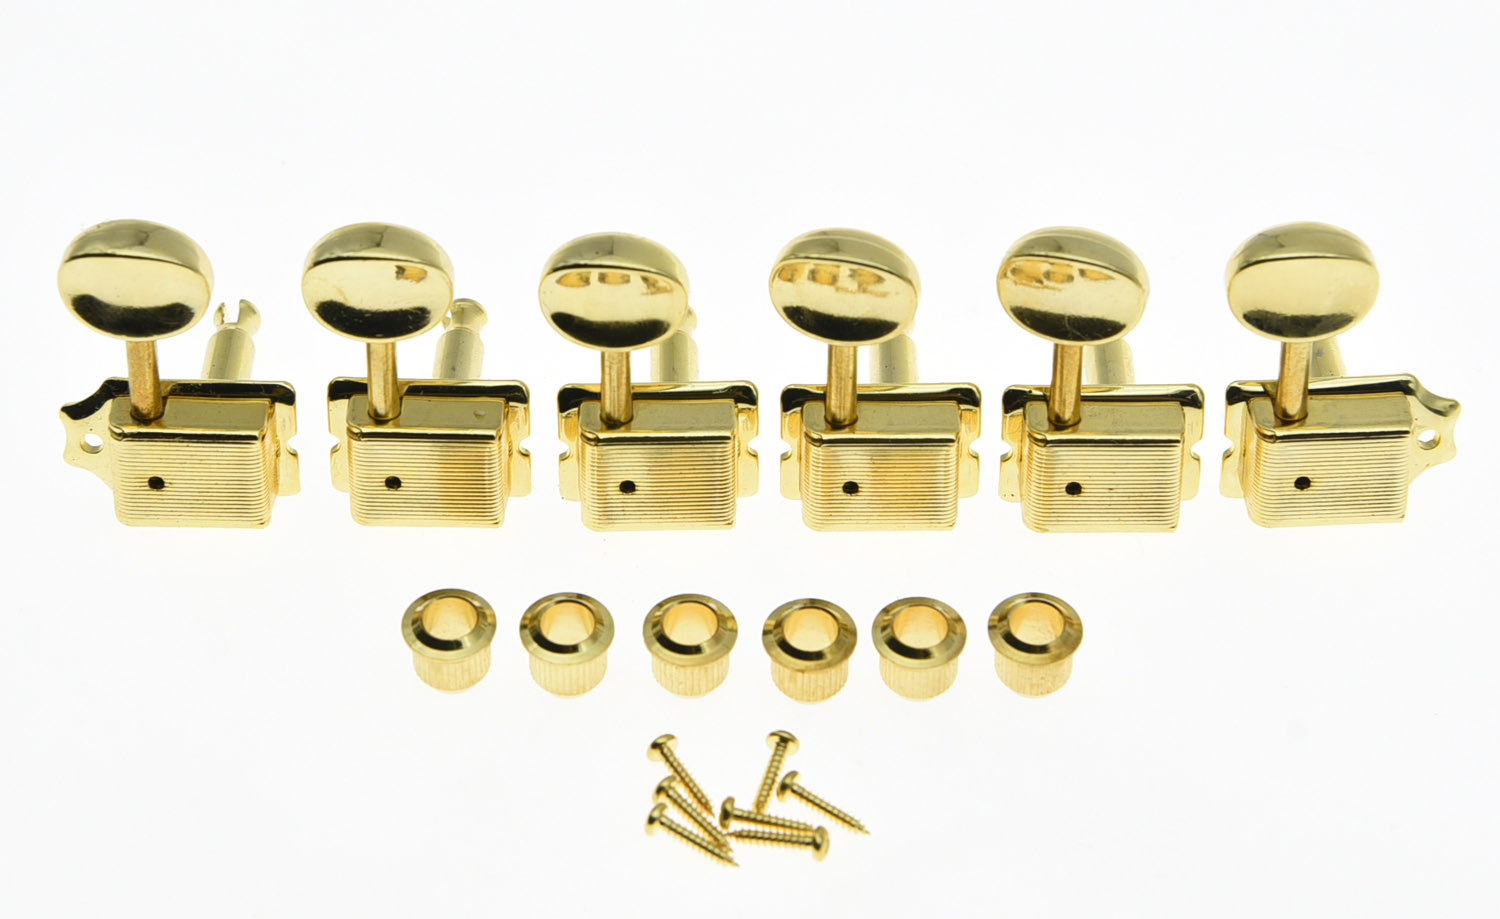 KAISH Vintage Guitar Tuning Keys Guitar Tuners Machine Heads for ST TL Gold yibuy 3r3l black guitar tuning keys machine heads for lp etc guitar